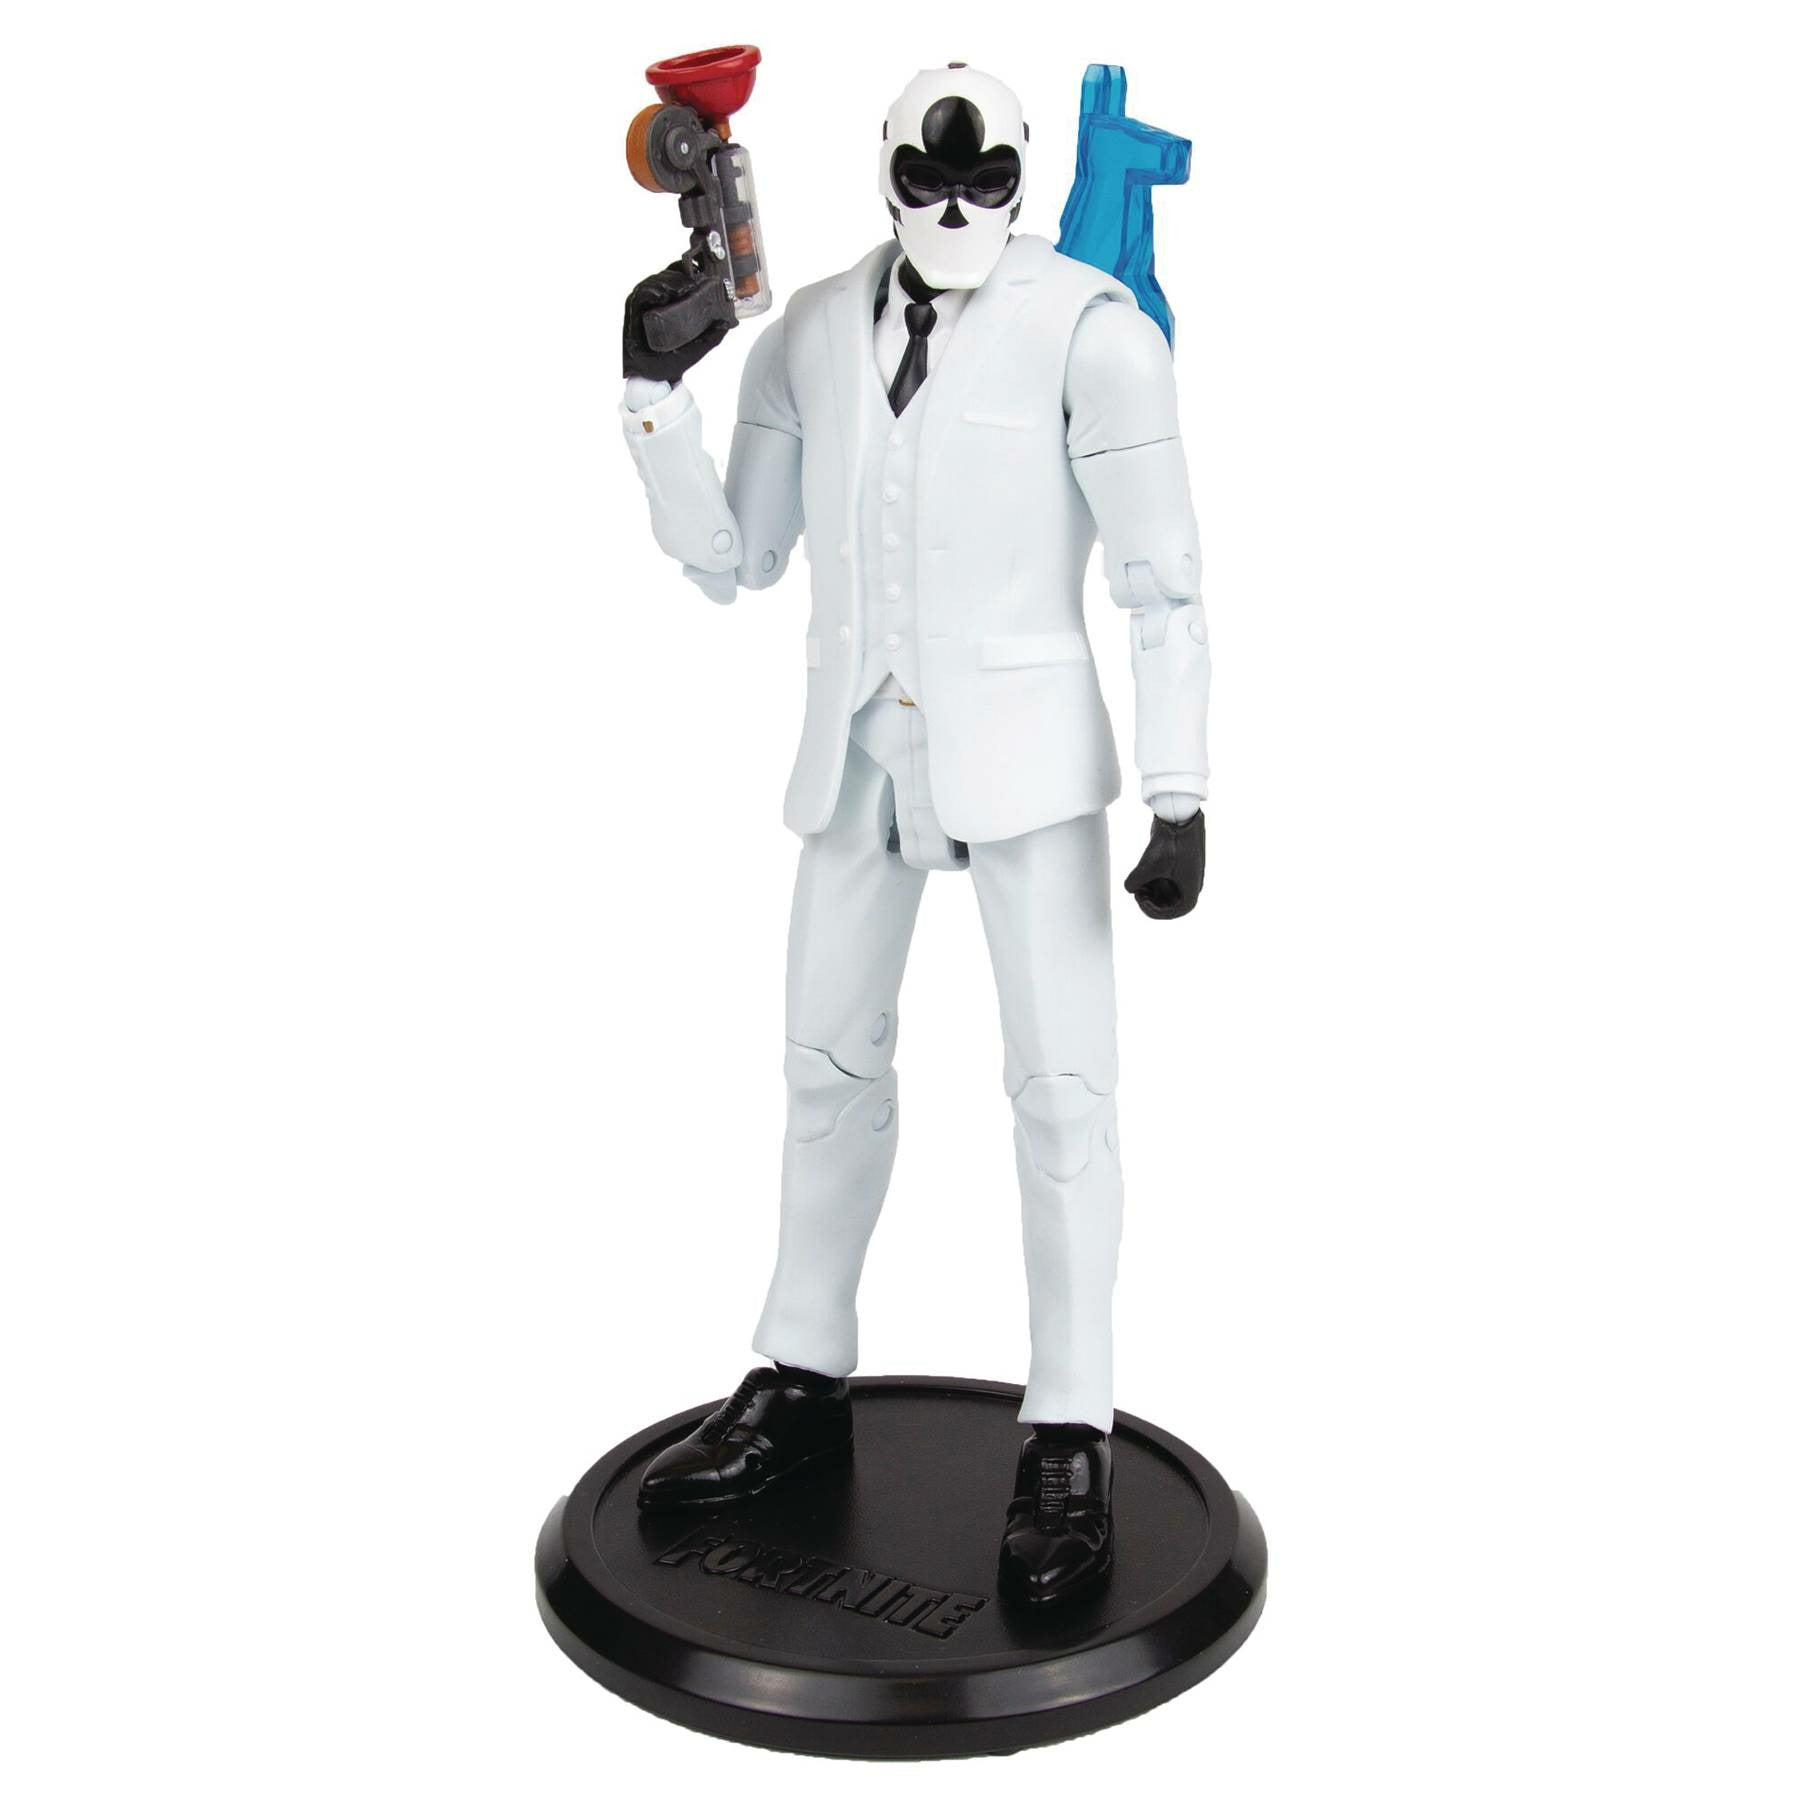 Fortnite Wild Card in Black 7 inch Premium Action Figure